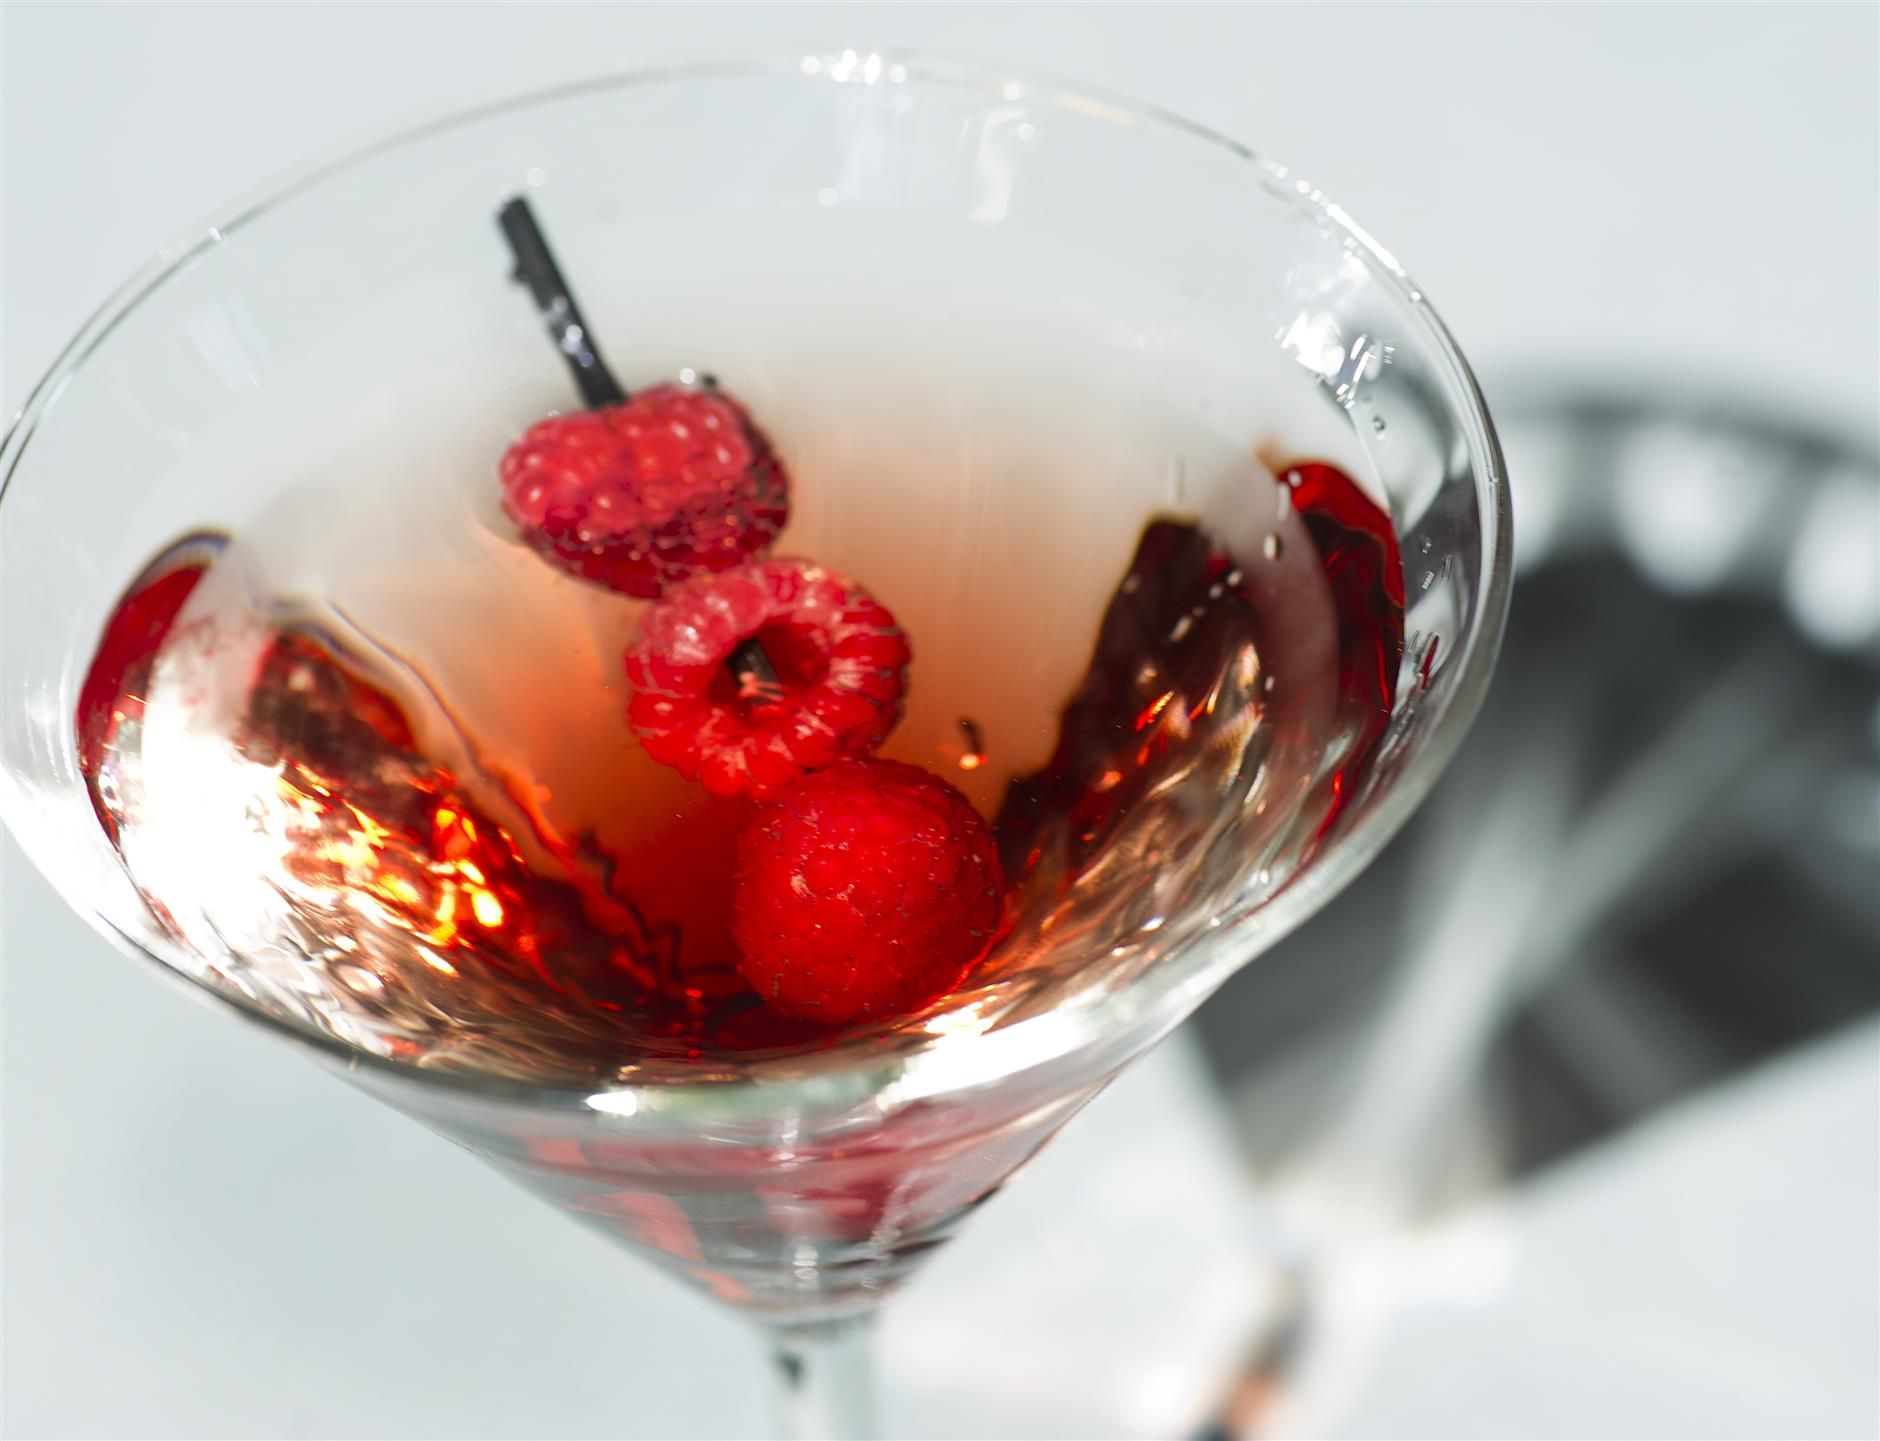 martini with raspberries as a garnish